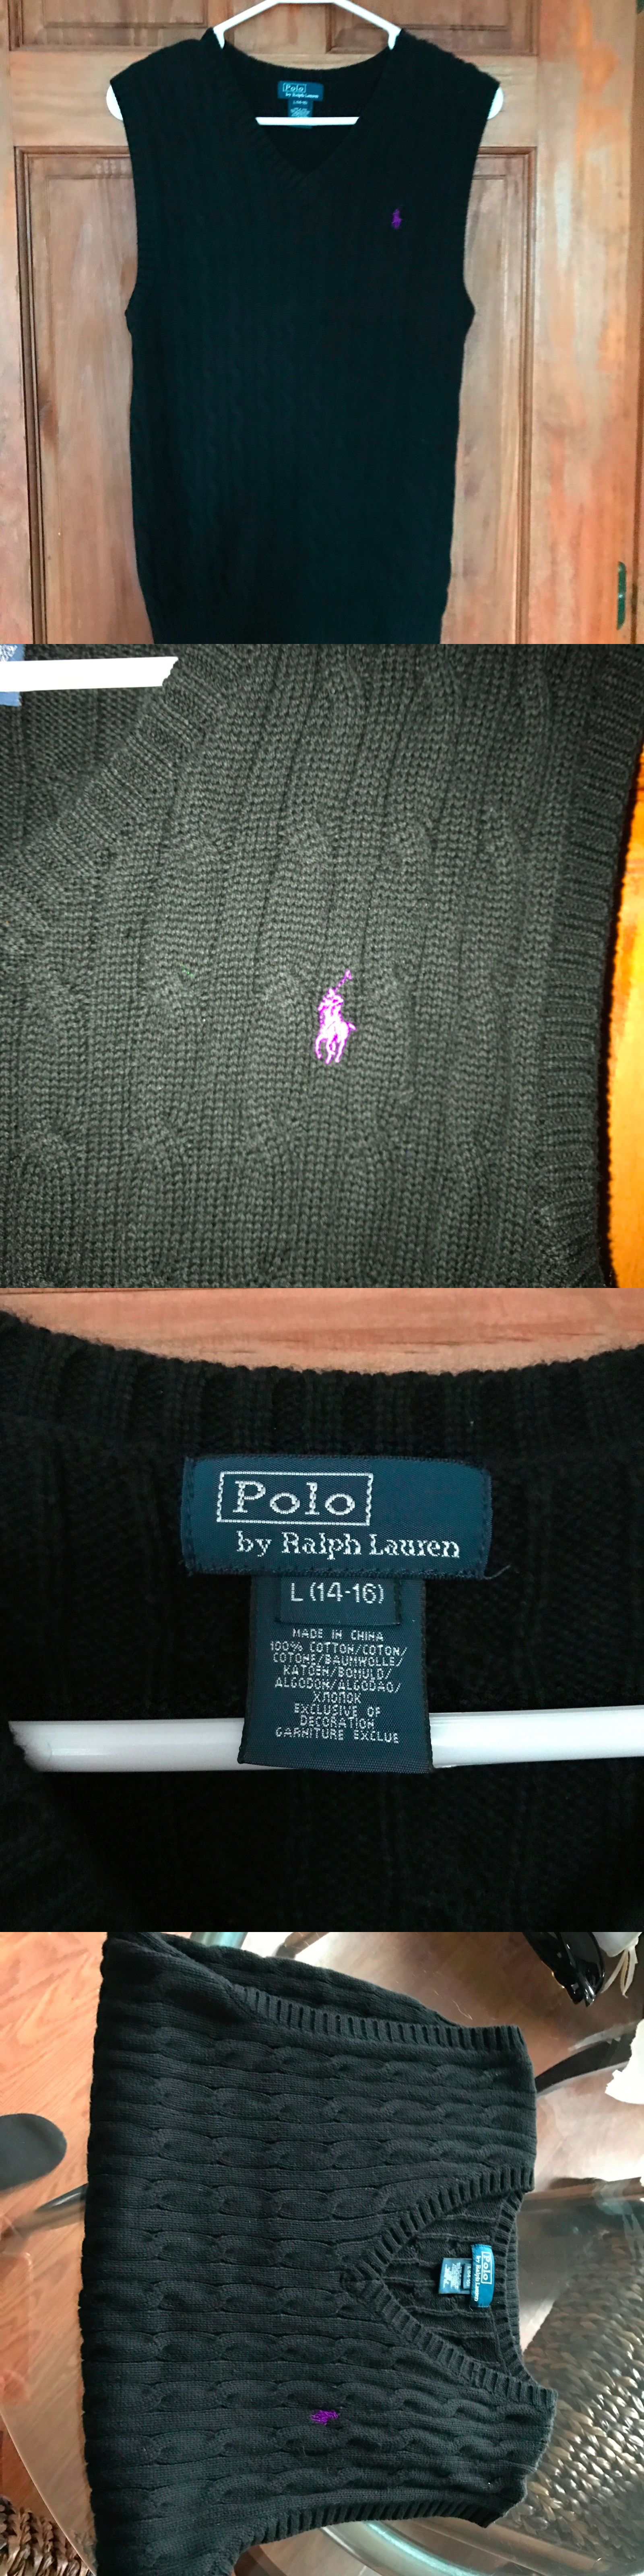 Sweaters 51946: Boys Ralph Lauren Polo Cable Knit Sweater Vest ...